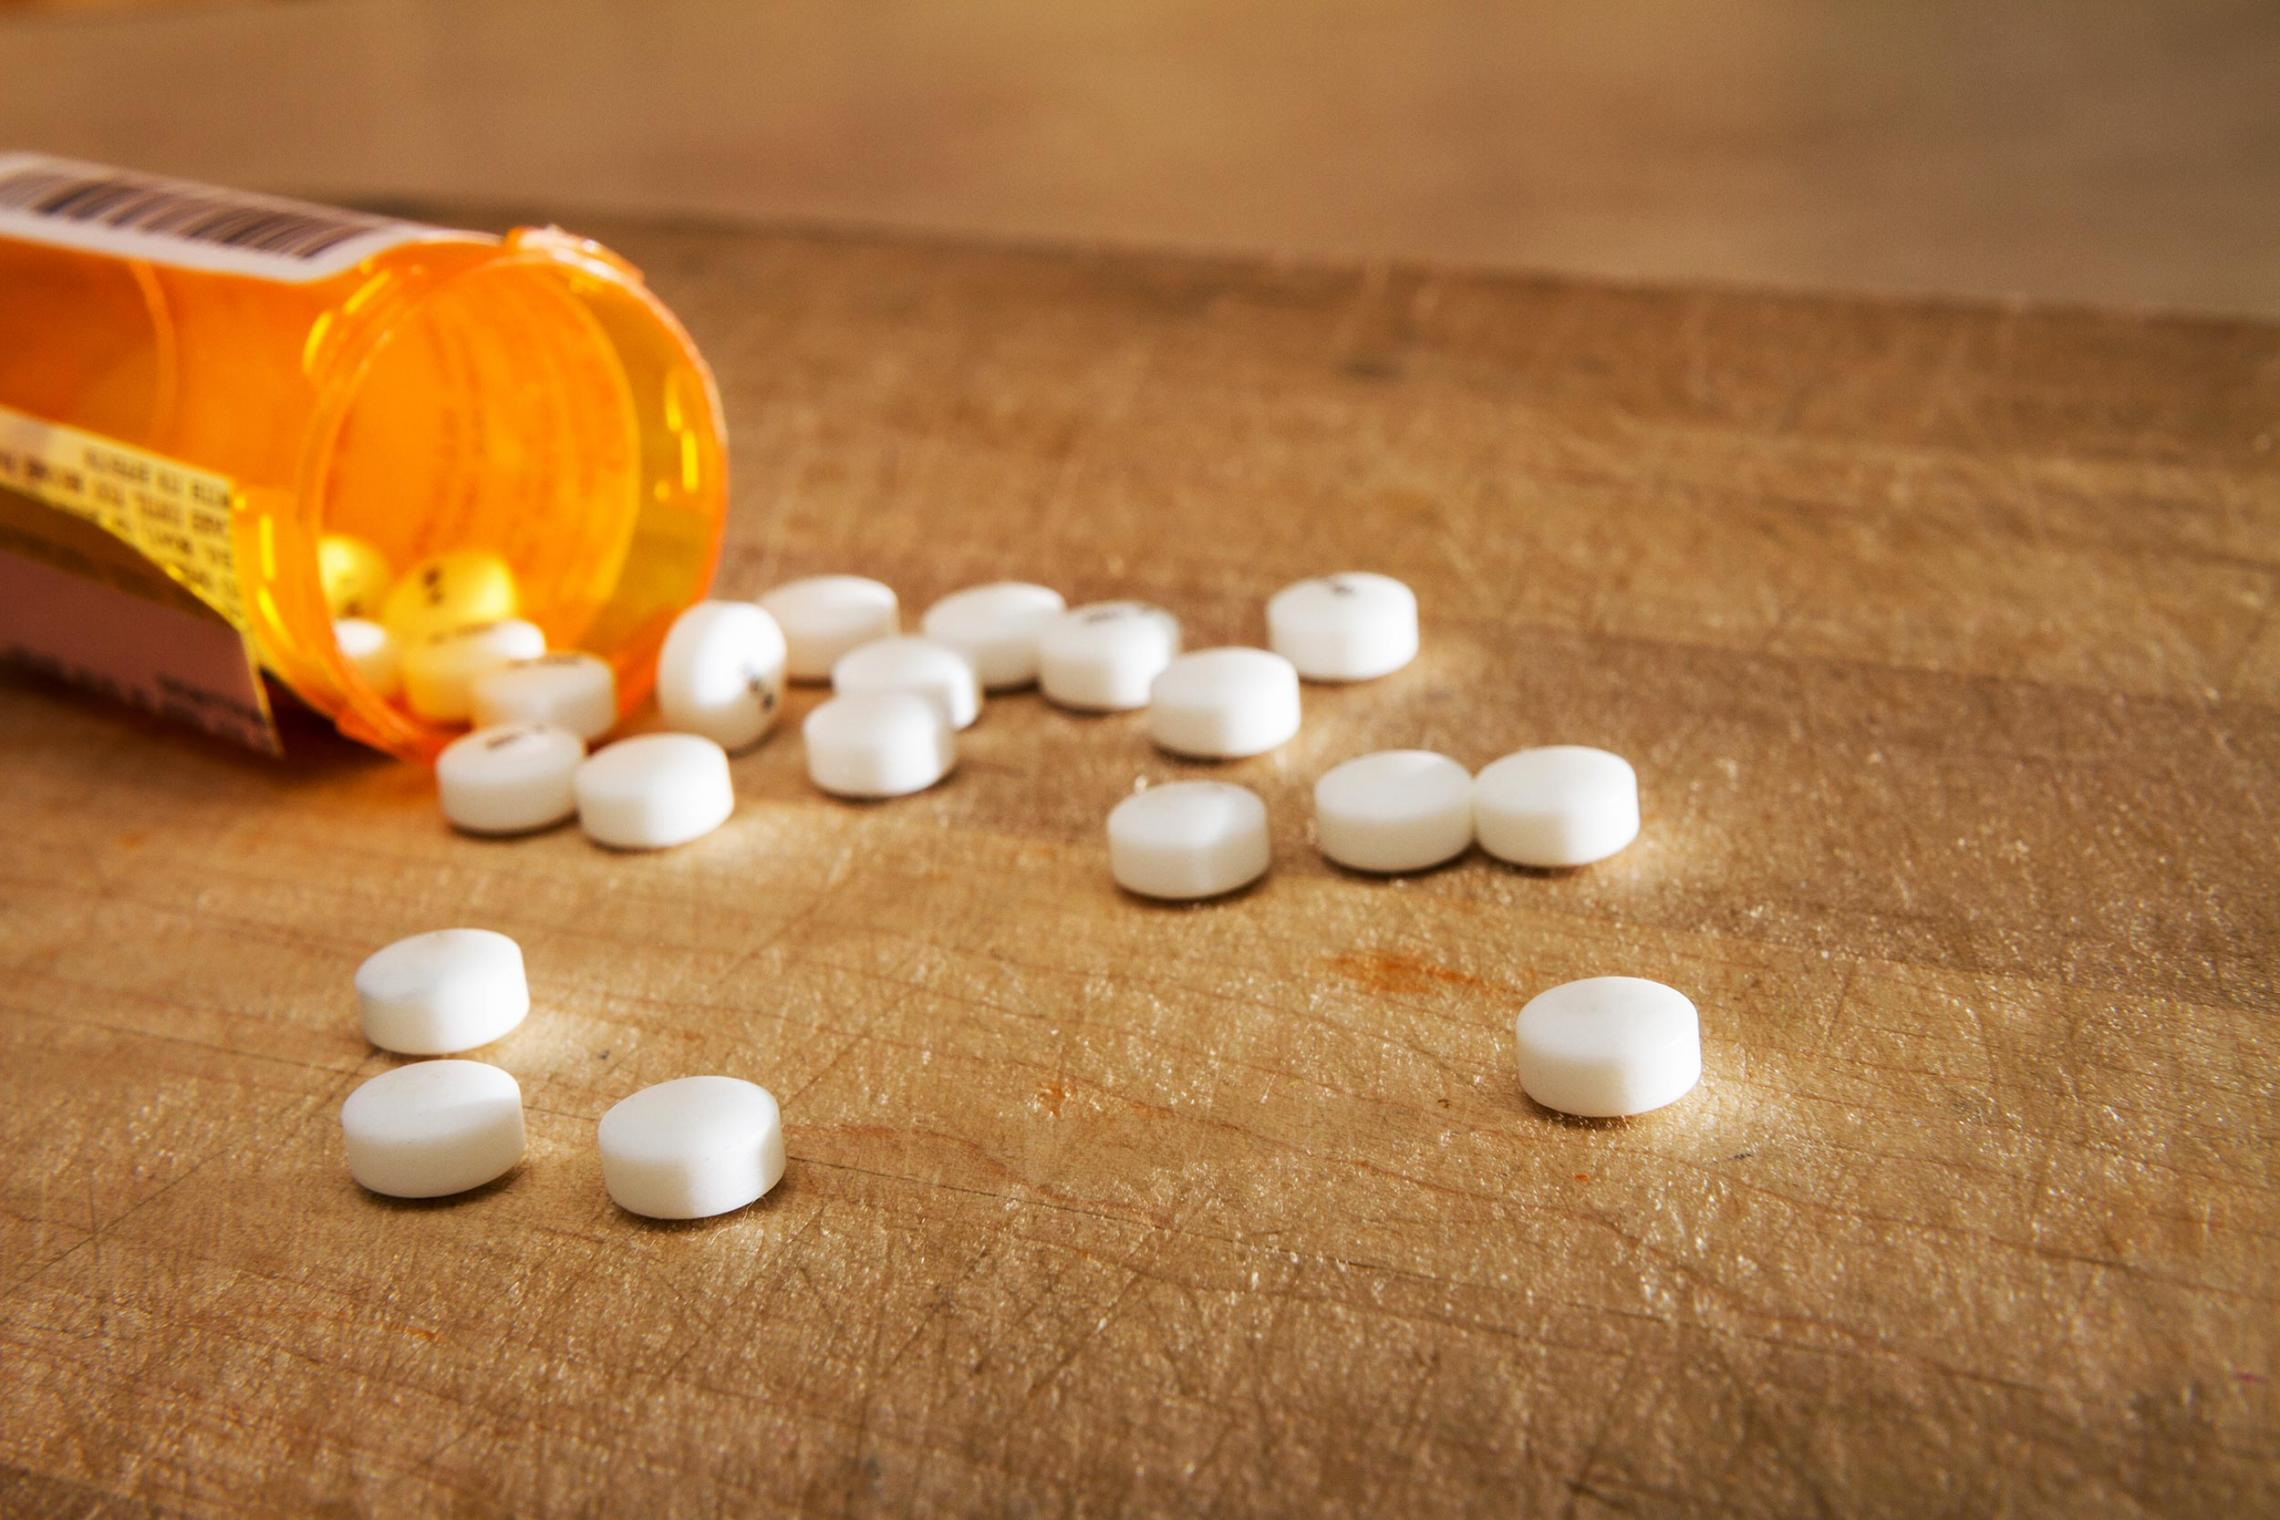 Opioids are the leading cause of accidental death in Virginia.